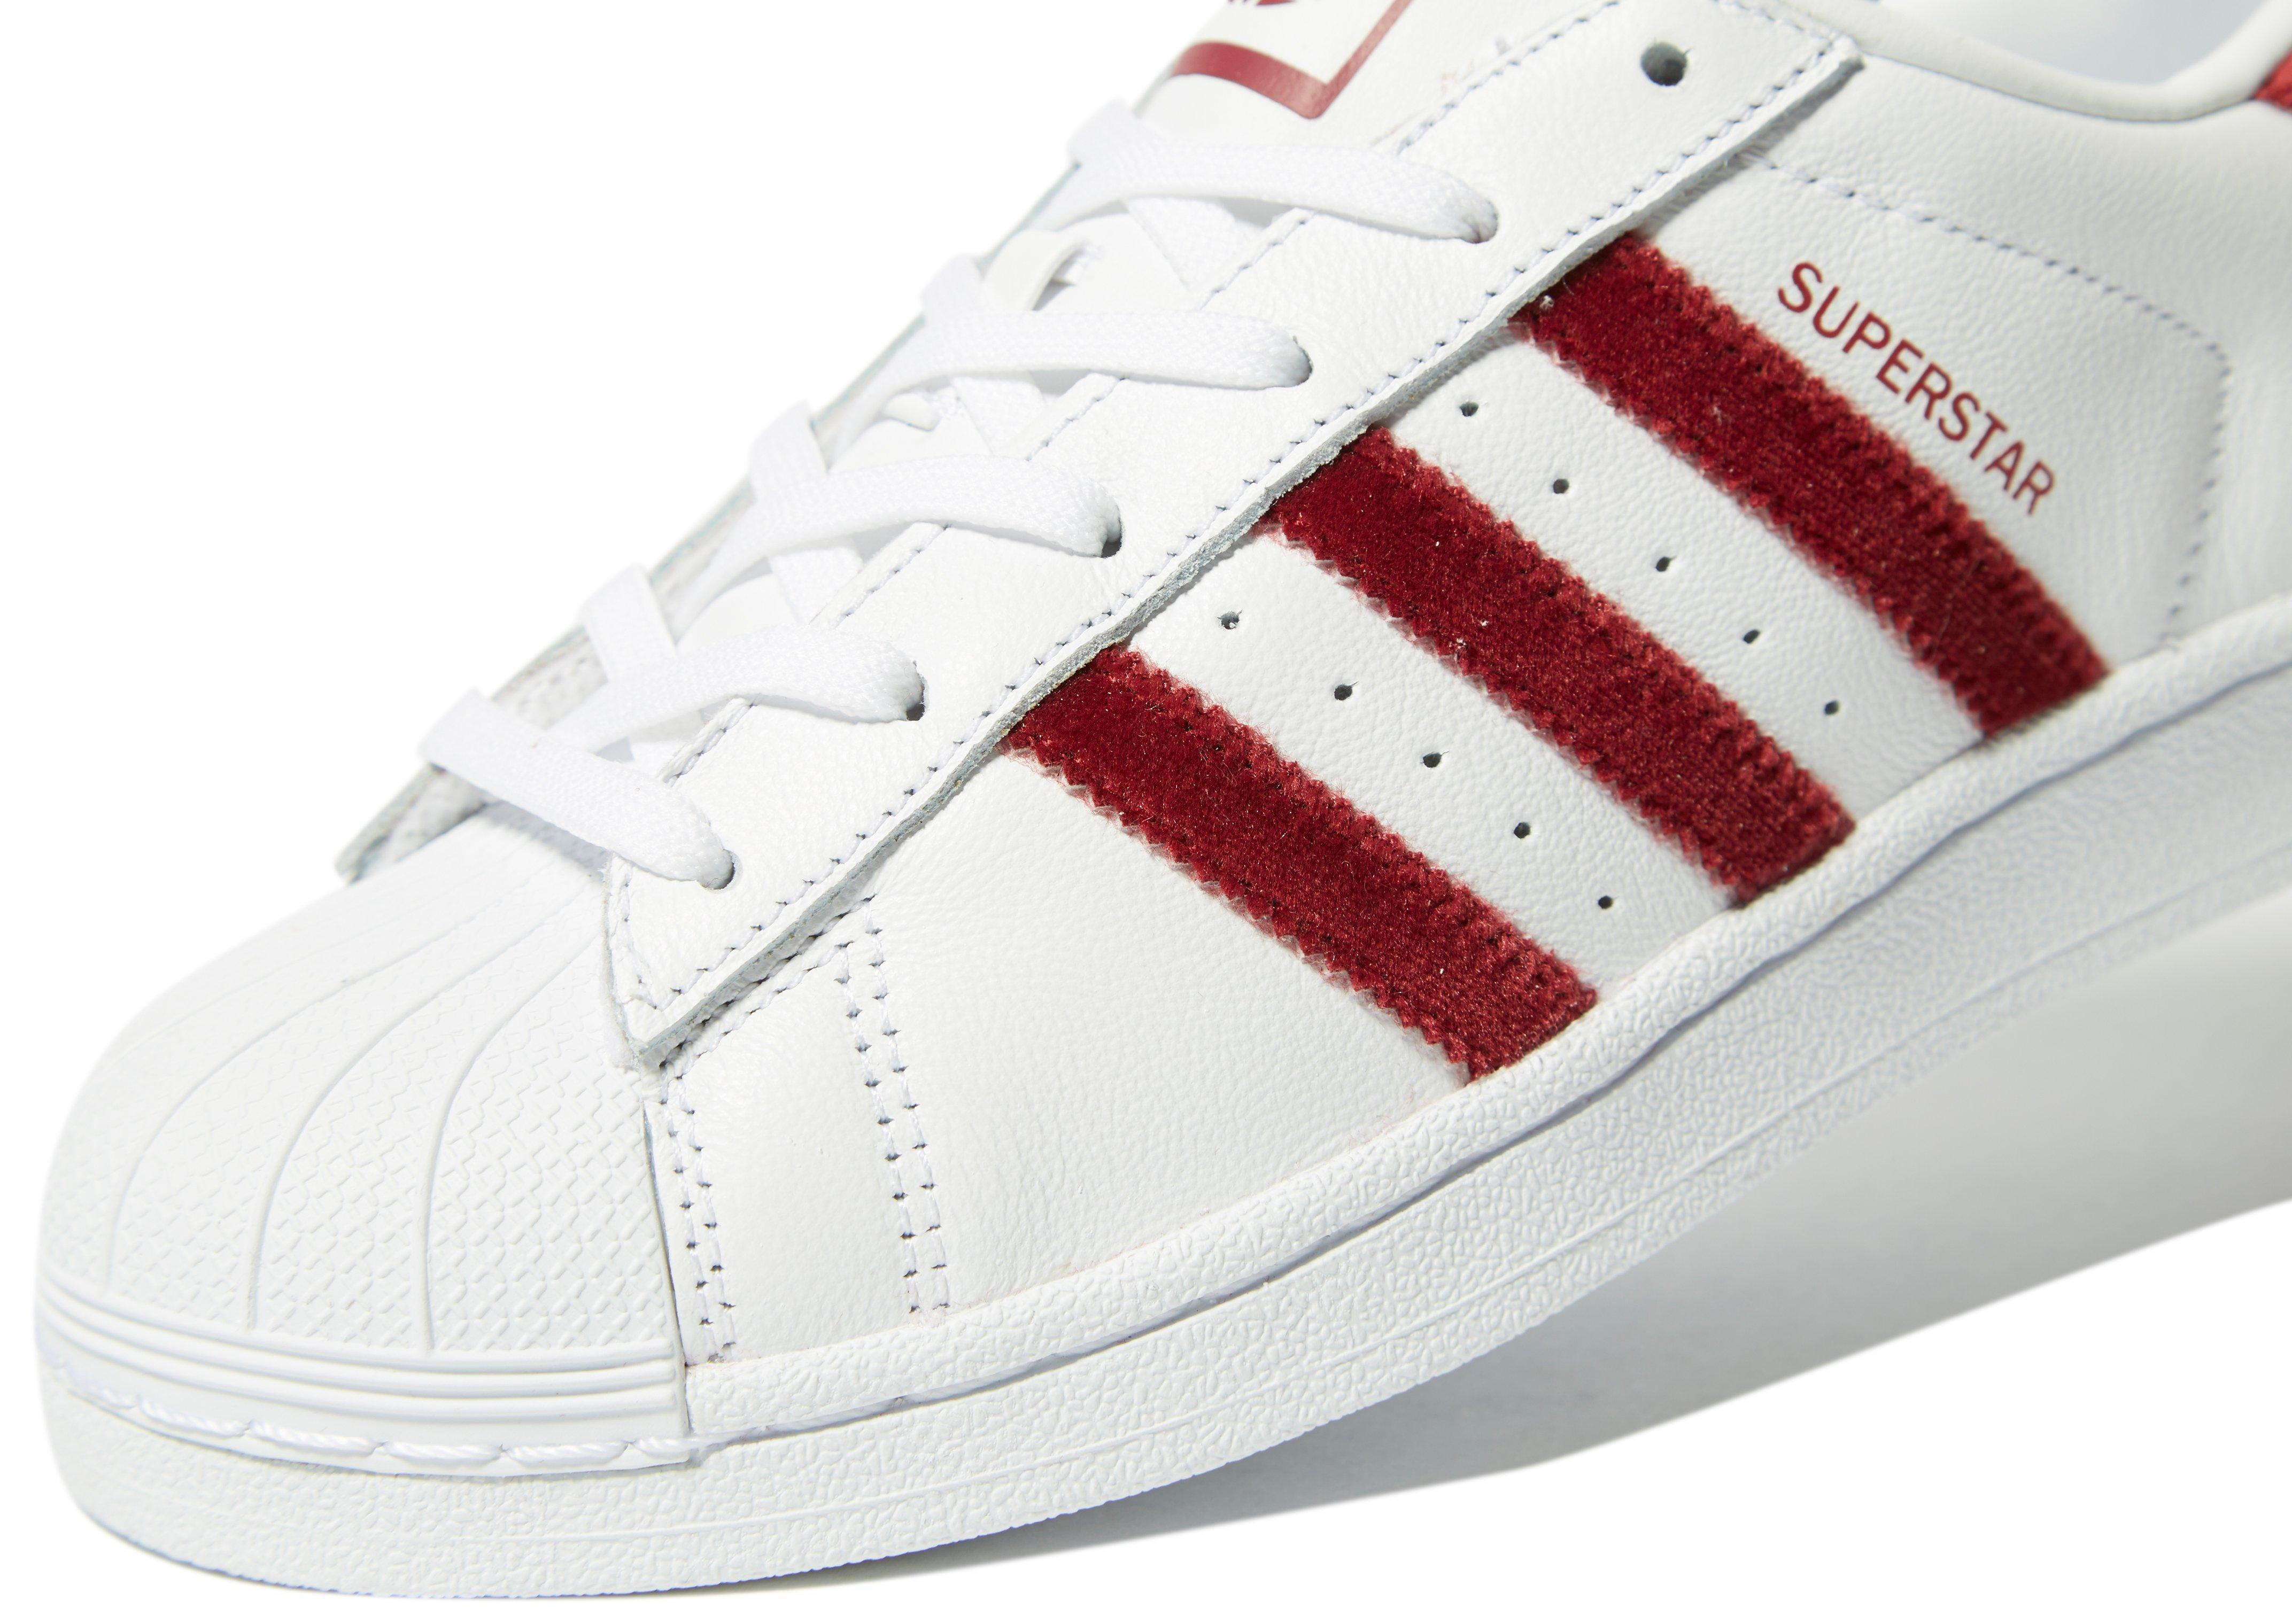 a57e3ea835d5 Gallery. Previously sold at  JD Sports · Men s Adidas Superstar ...